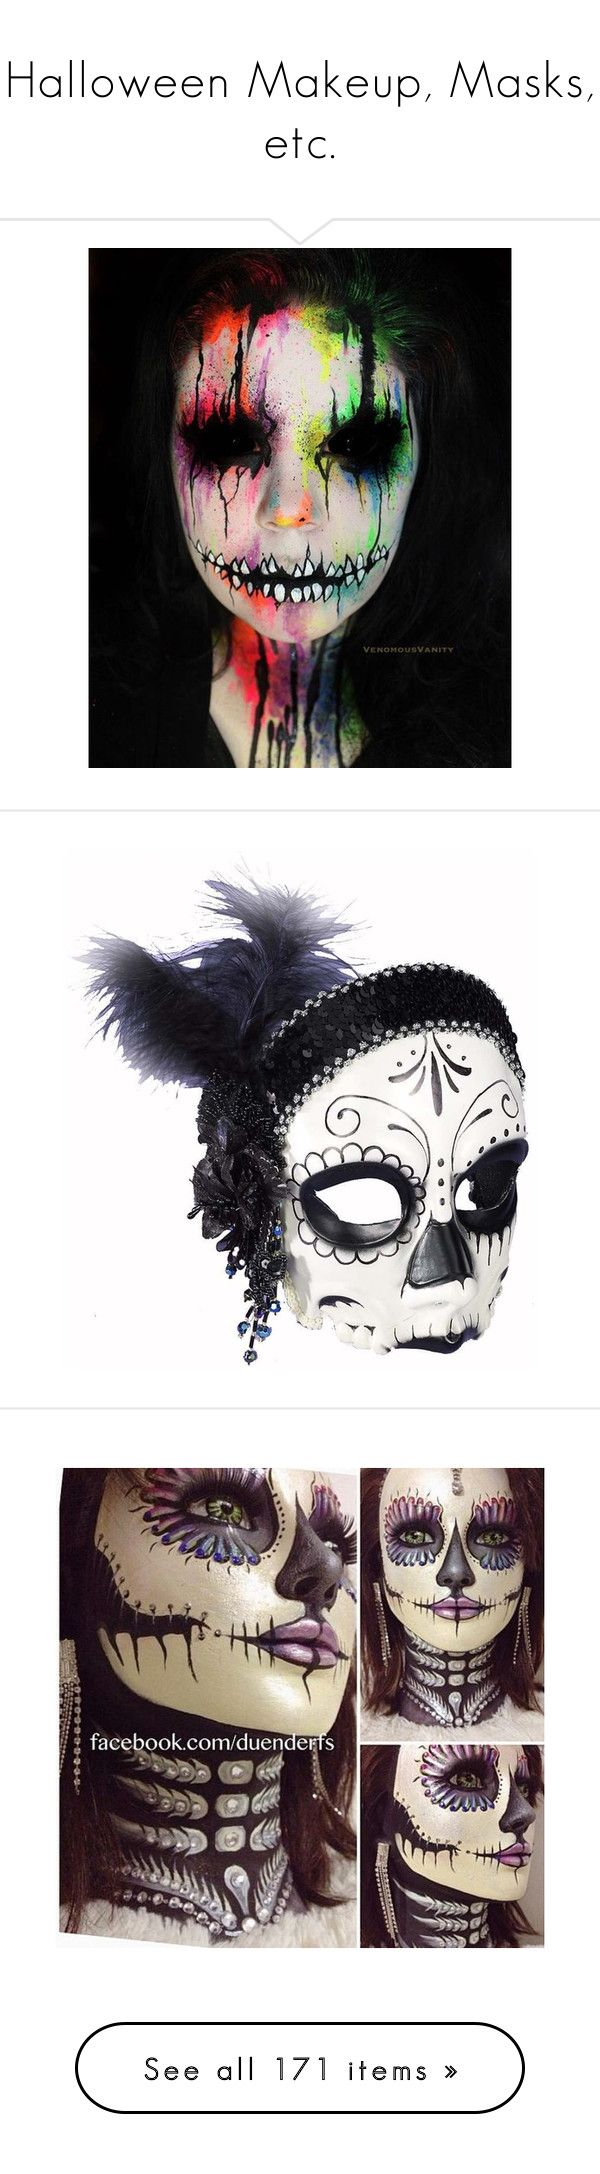 """""""Halloween Makeup, Masks, etc."""" by meranda-joi ❤ liked on Polyvore featuring beauty products, makeup, costumes, halloween, masks, flapper halloween costumes, lady halloween costumes, ladies costumes, womens halloween costumes and womens costumes"""